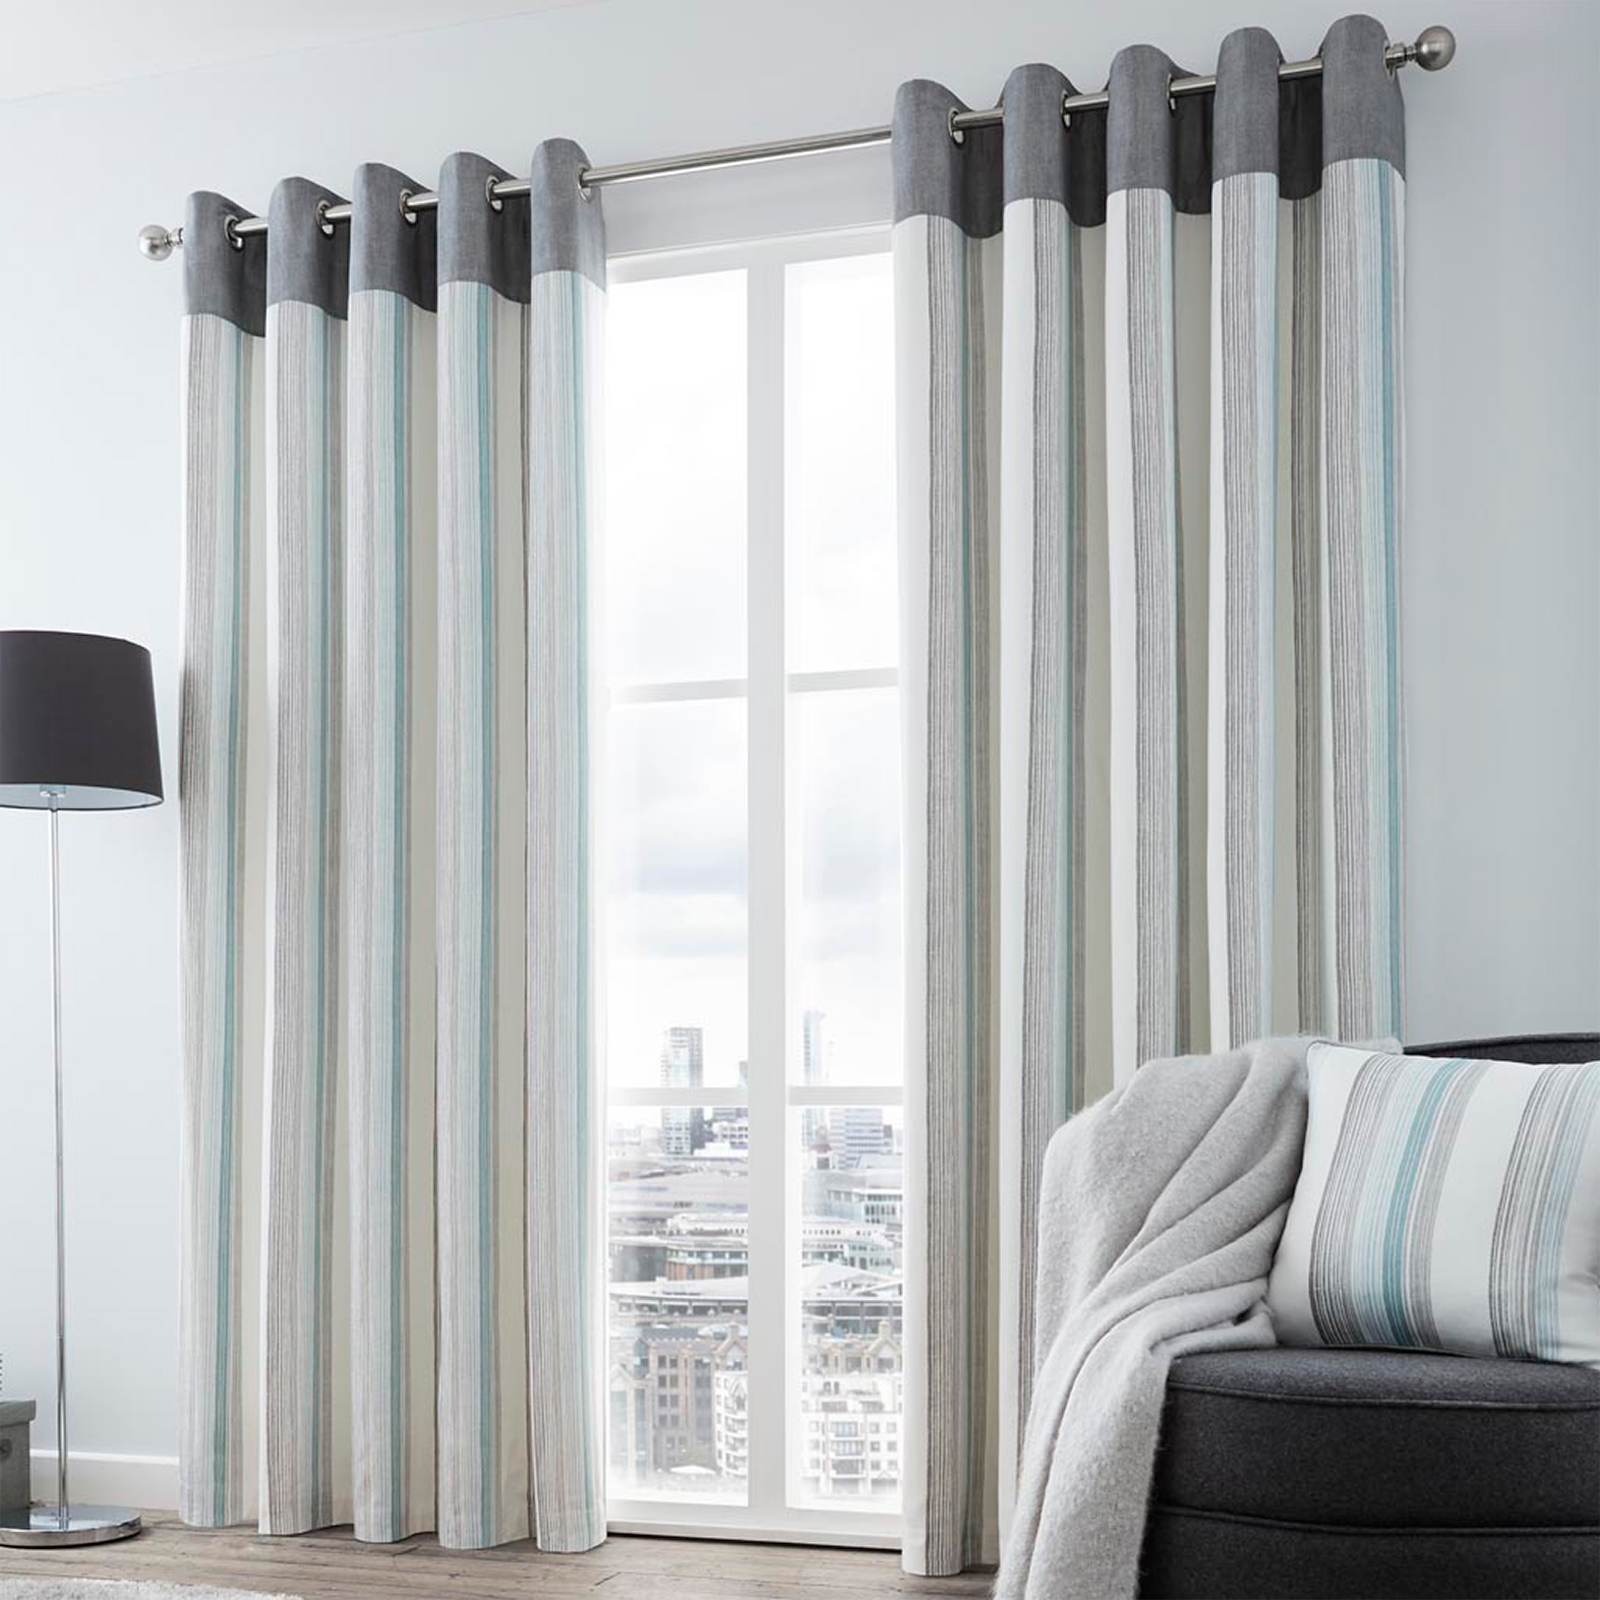 fully lined eyelet curtains with striped vertical pattern. Black Bedroom Furniture Sets. Home Design Ideas